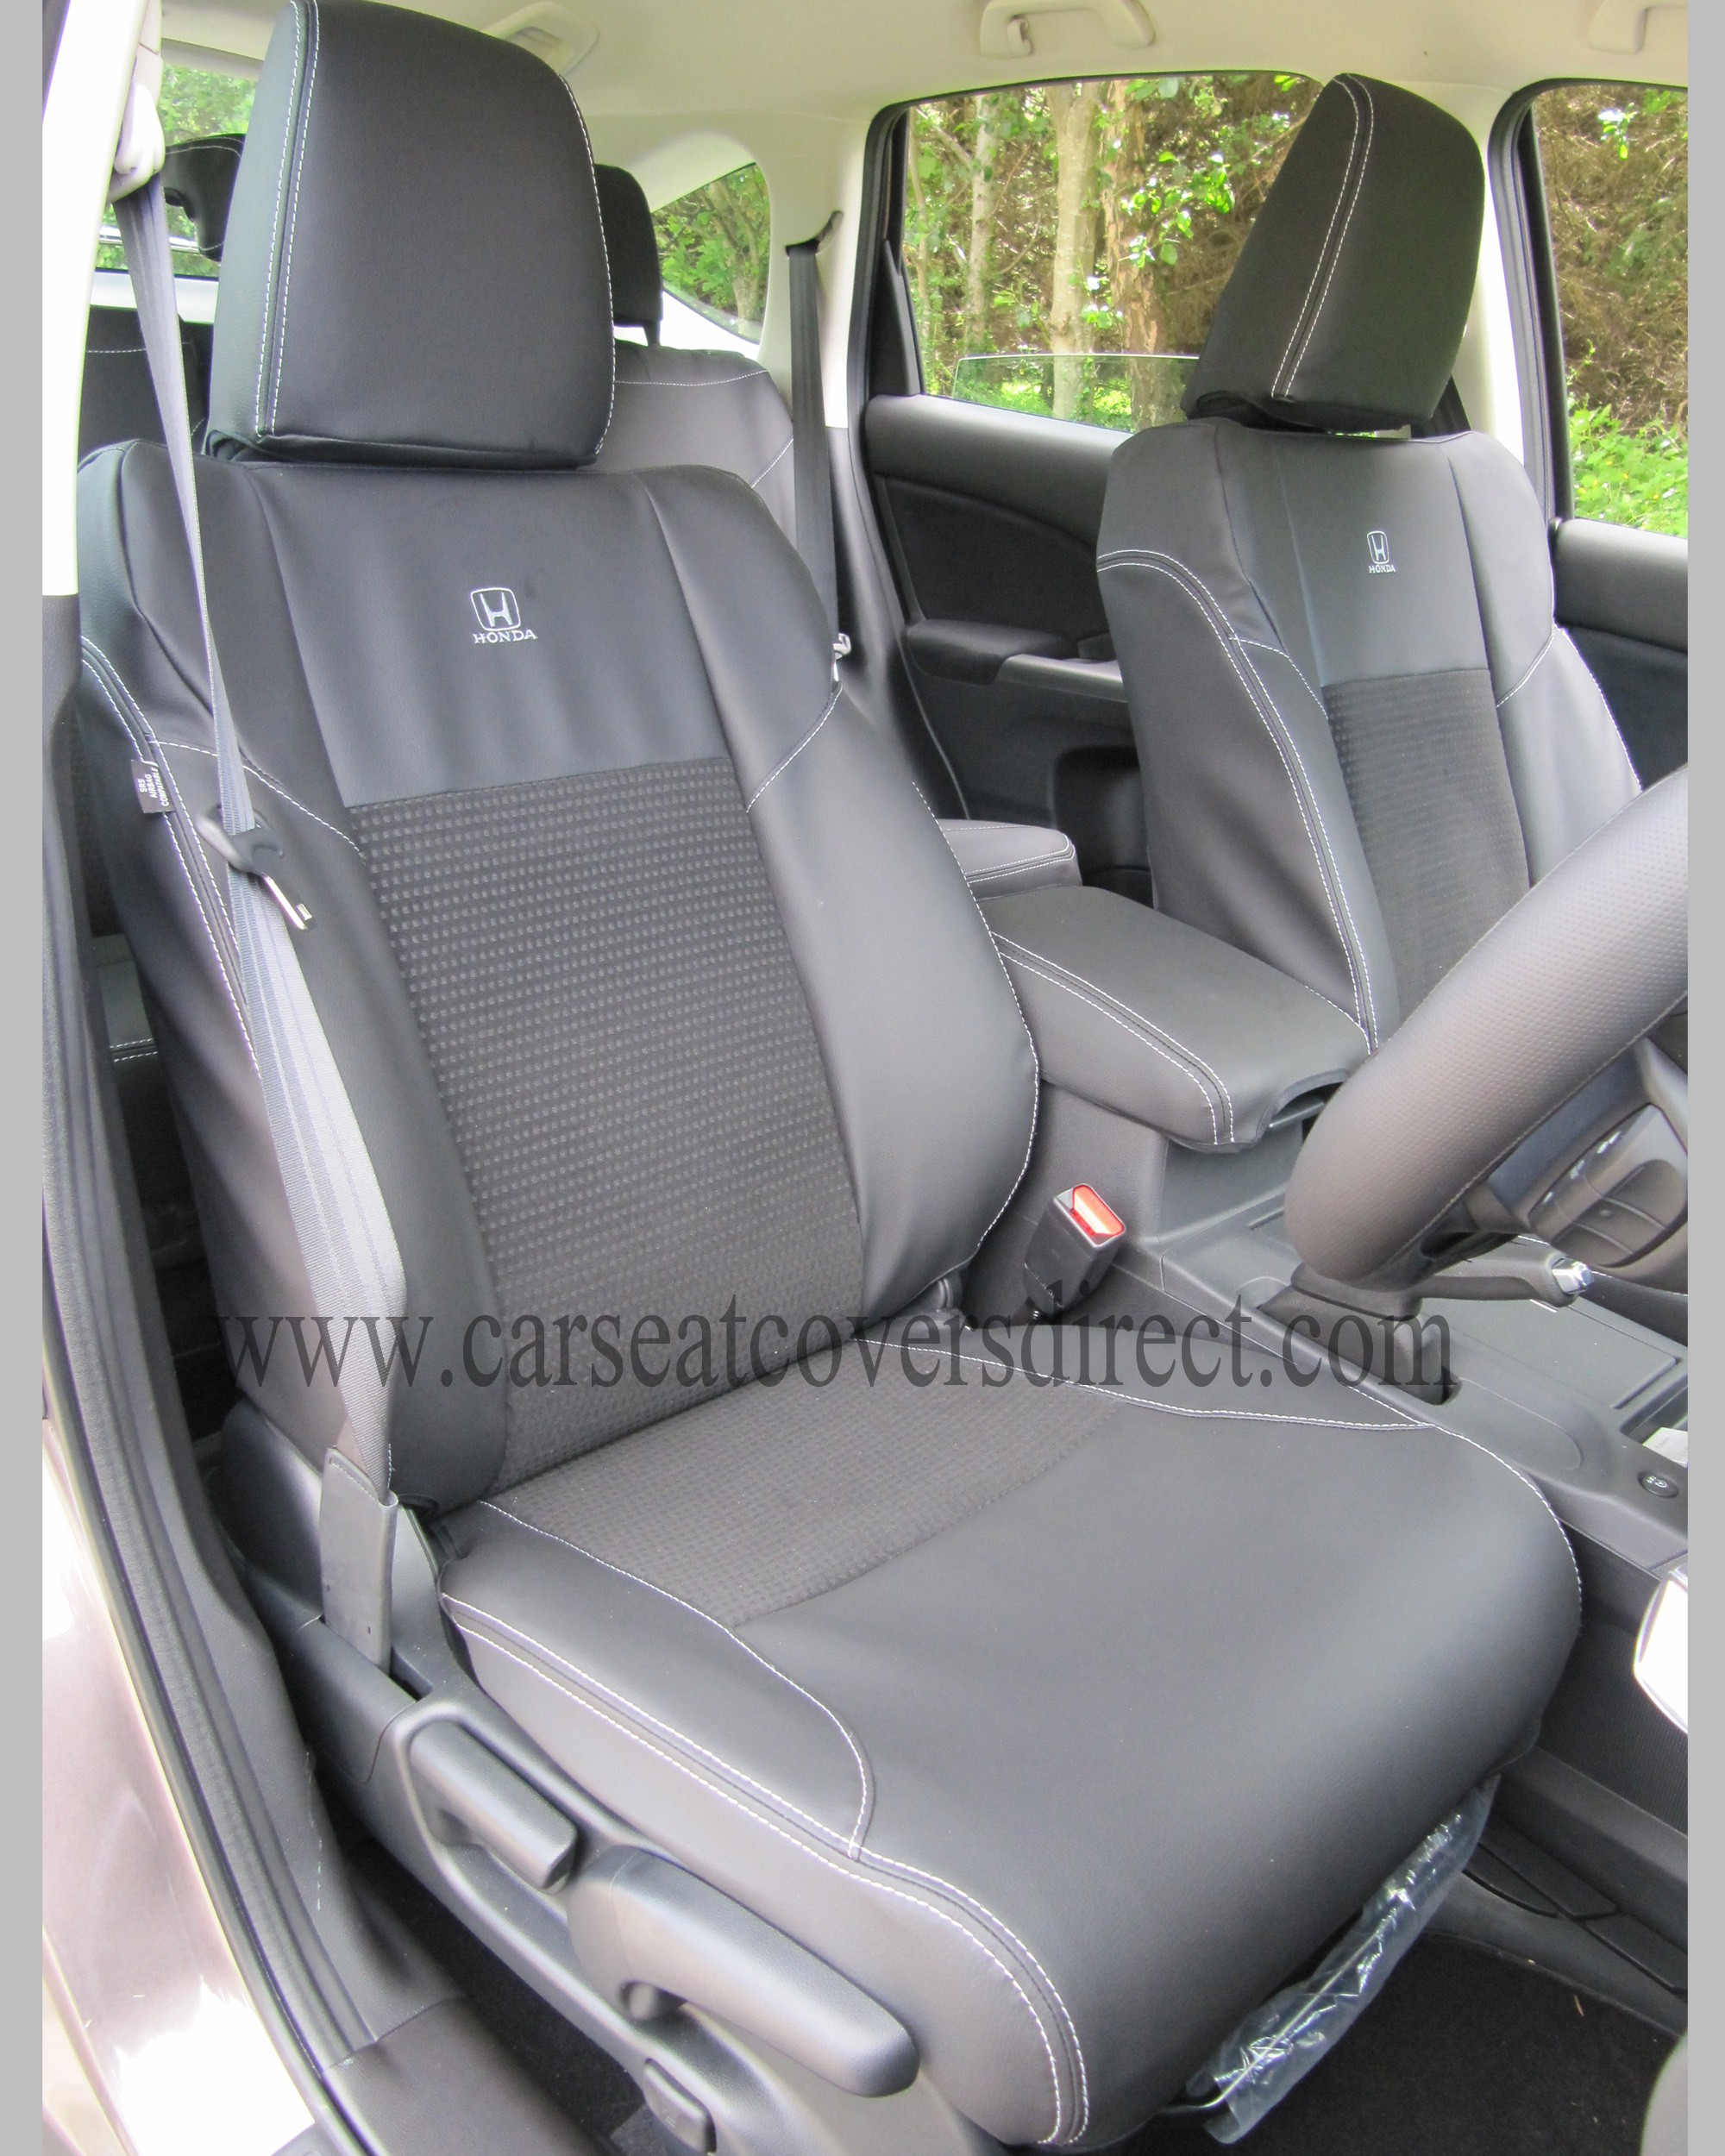 honda crv 4th gen seat covers custom tailored seat covers car seat covers direct tailored to. Black Bedroom Furniture Sets. Home Design Ideas